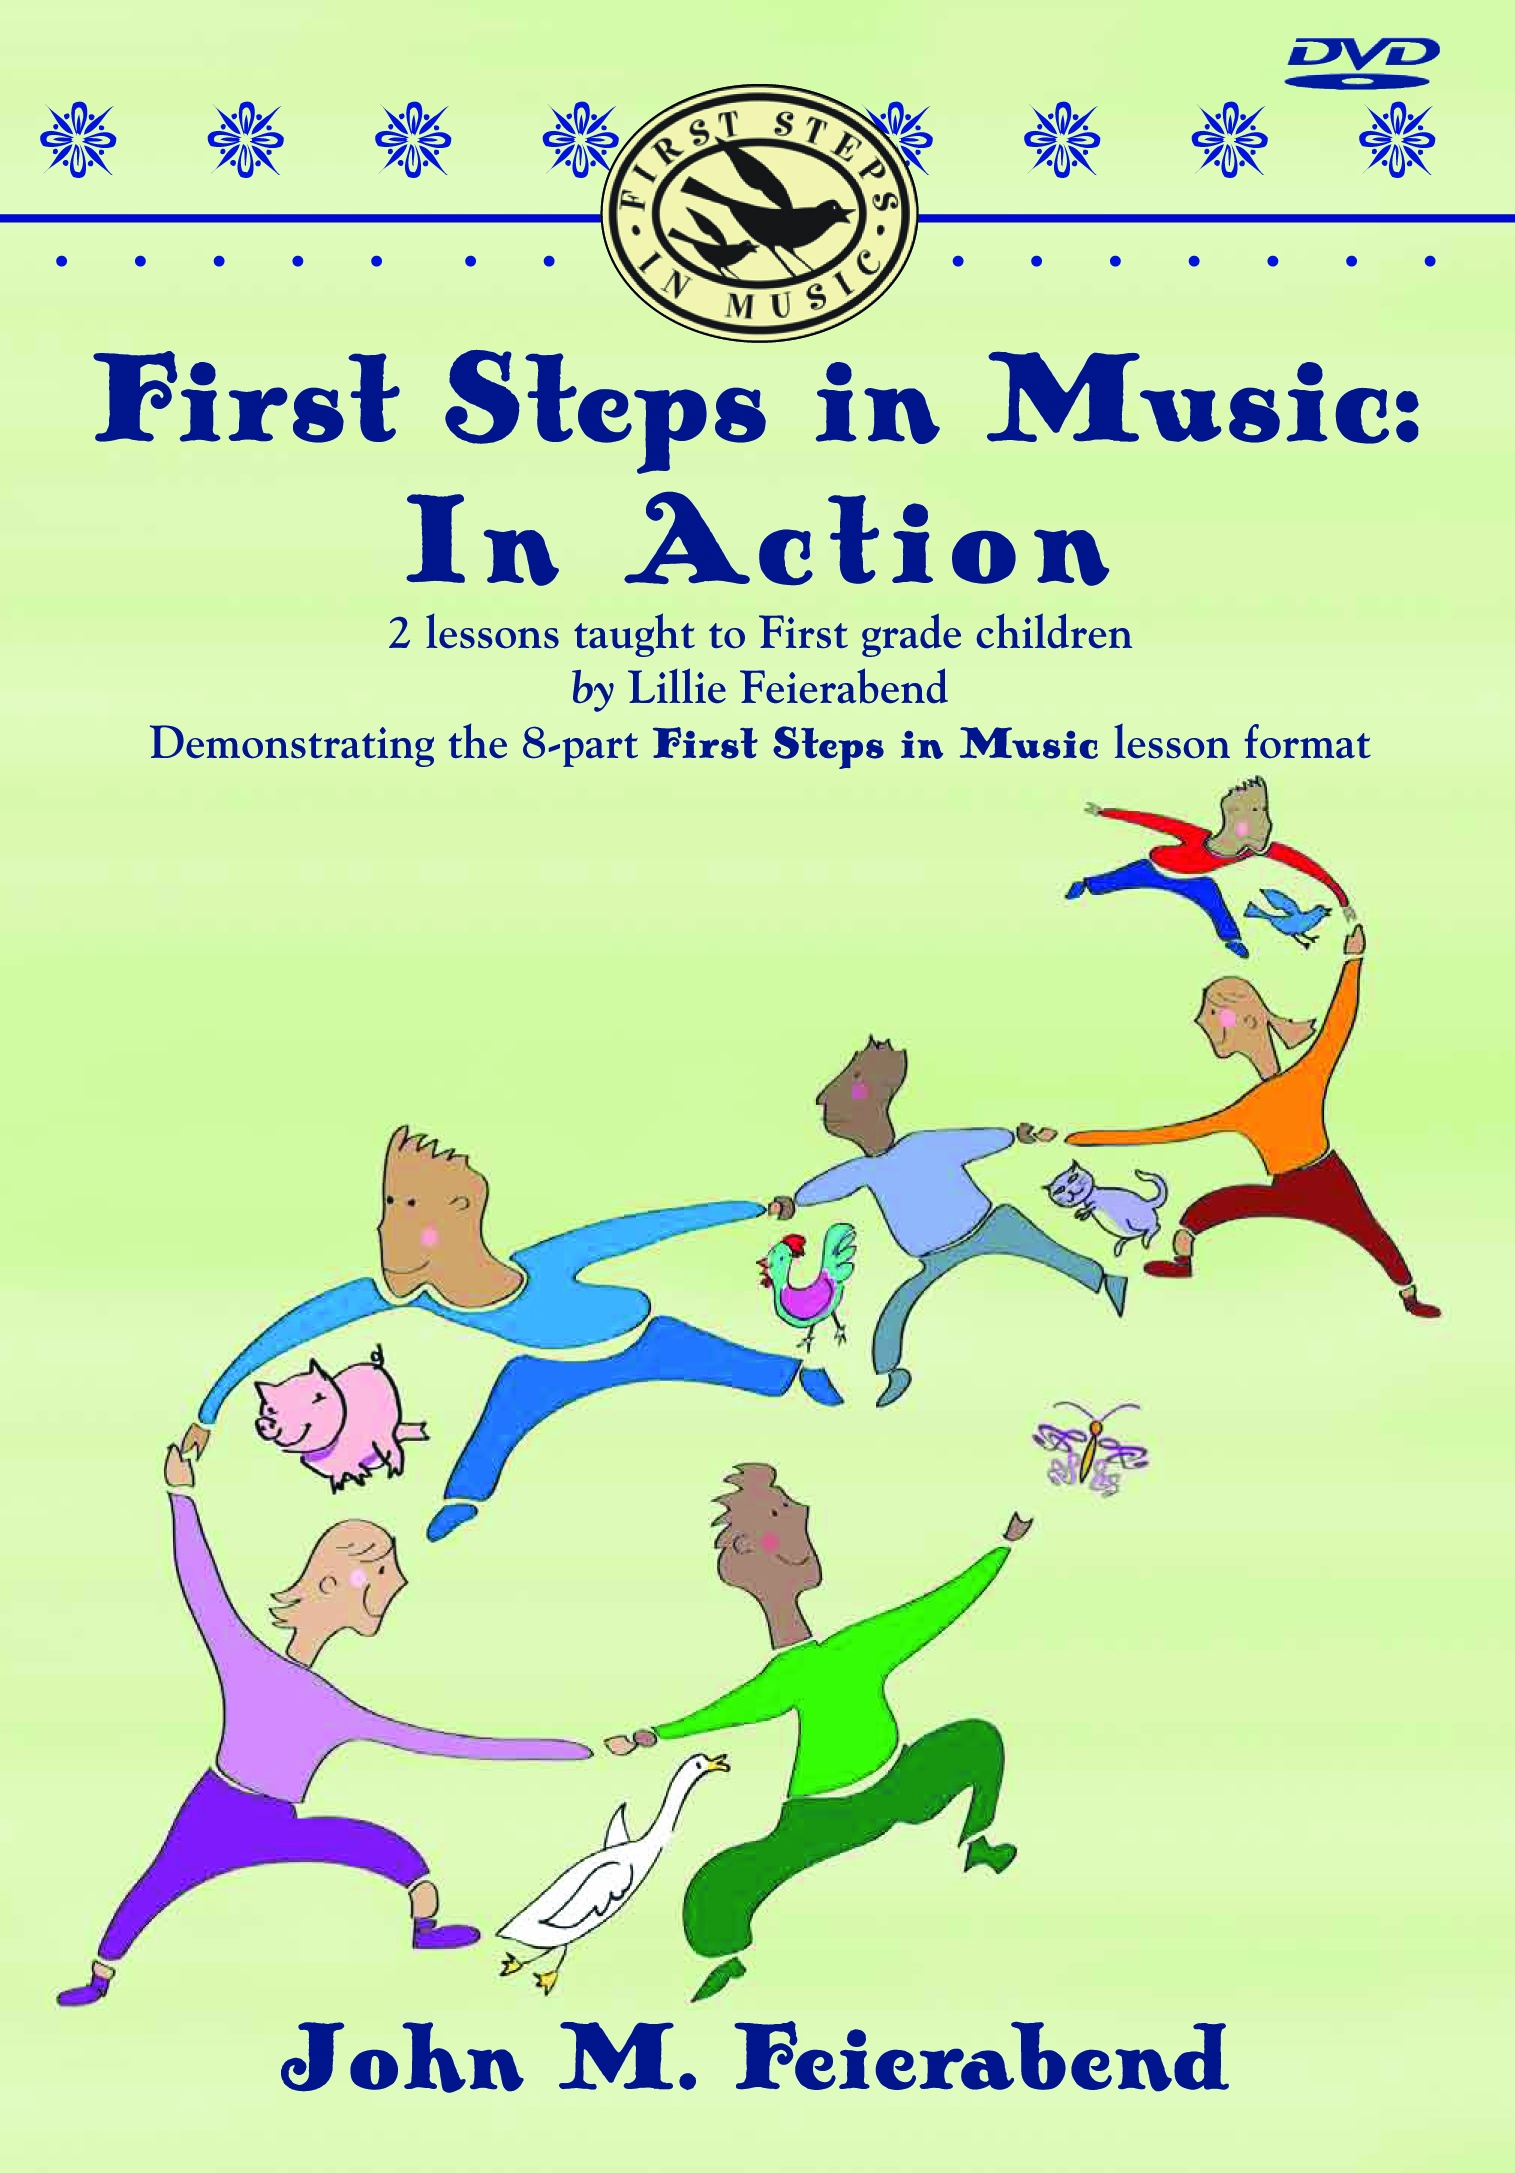 First Steps in Music DVD